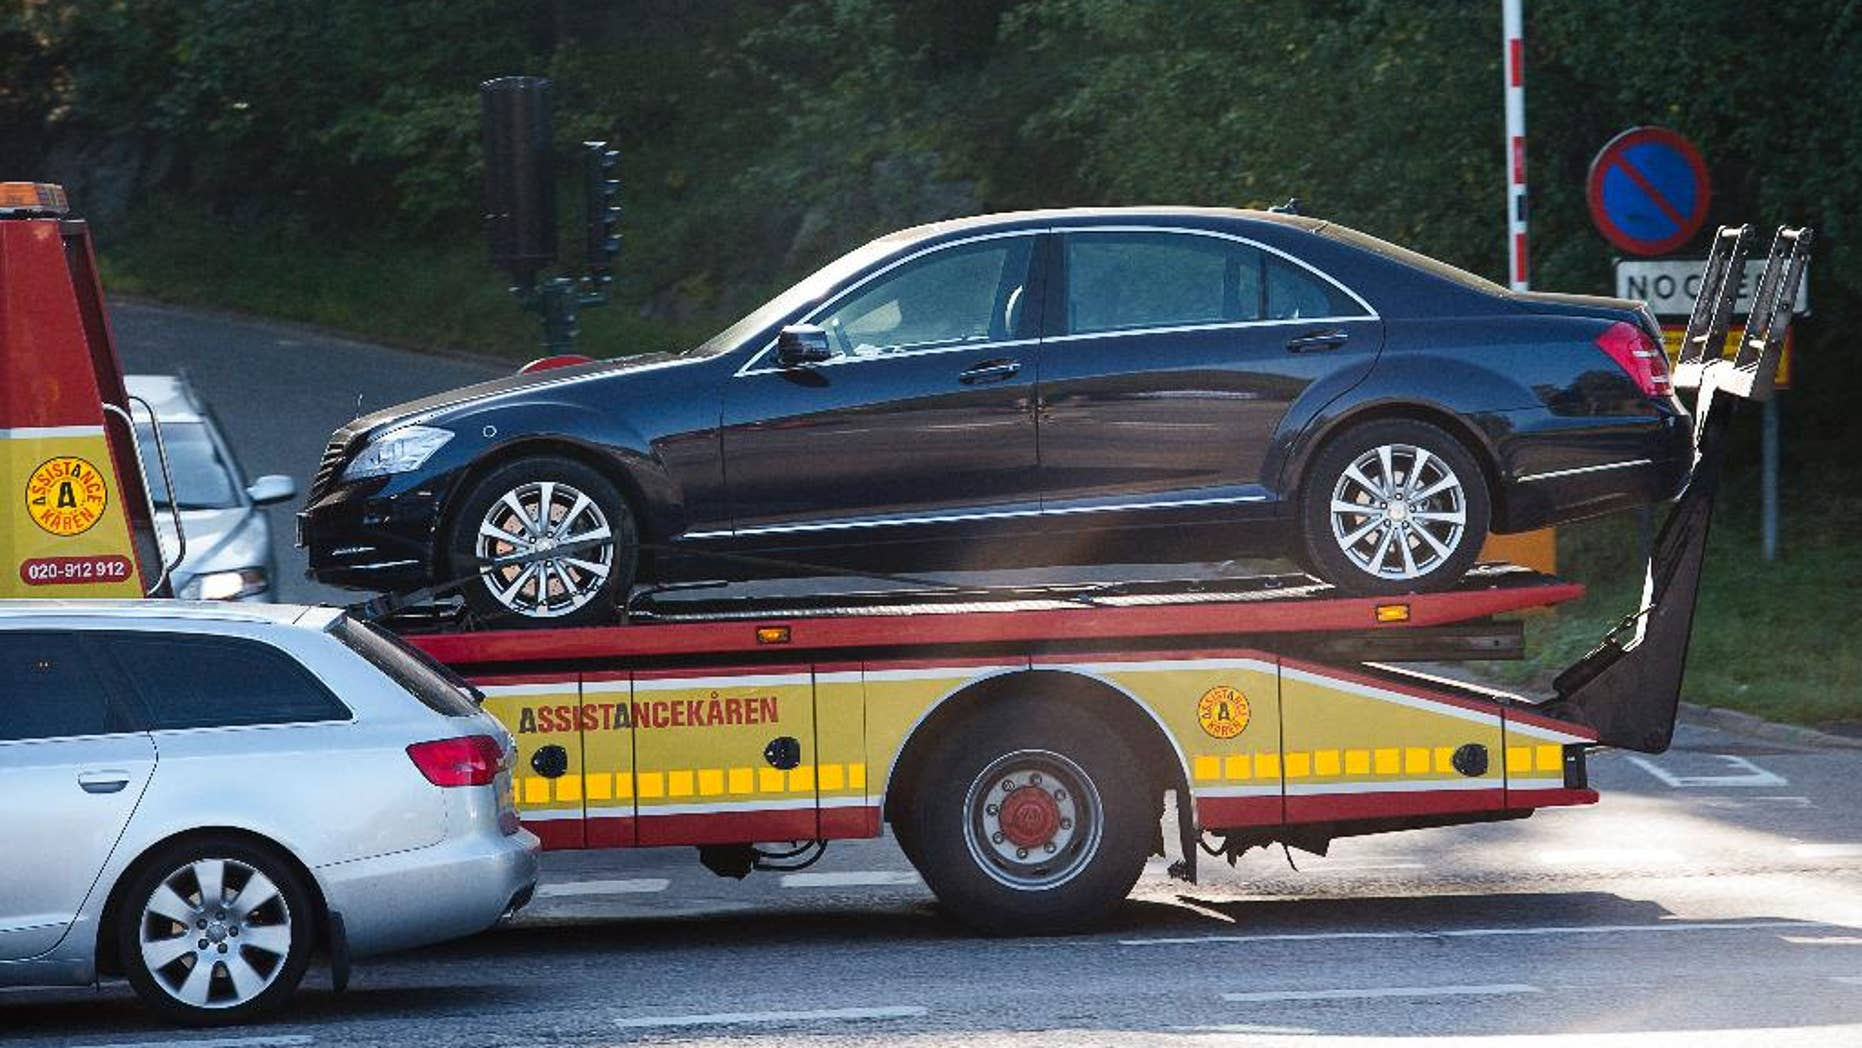 The vehicle involved in an accident involving Sweden's King Carl XVI Gustaf, is towed away from the scene, in Stockholm, Sweden, Wednesday, Sept. 17, 2014. Sweden's royal palace says King Carl XVI Gustaf was involved in a car crash on his way to an airport in Stockholm but was unhurt. Palace spokeswoman Annika Sonnerberg says the 68-year-old king was in the back seat Wednesday when his car collided with an oncoming vehicle making a left turn. (AP Photo/TT News Agency, Jonas Ekstromer) SWEDEN OUT